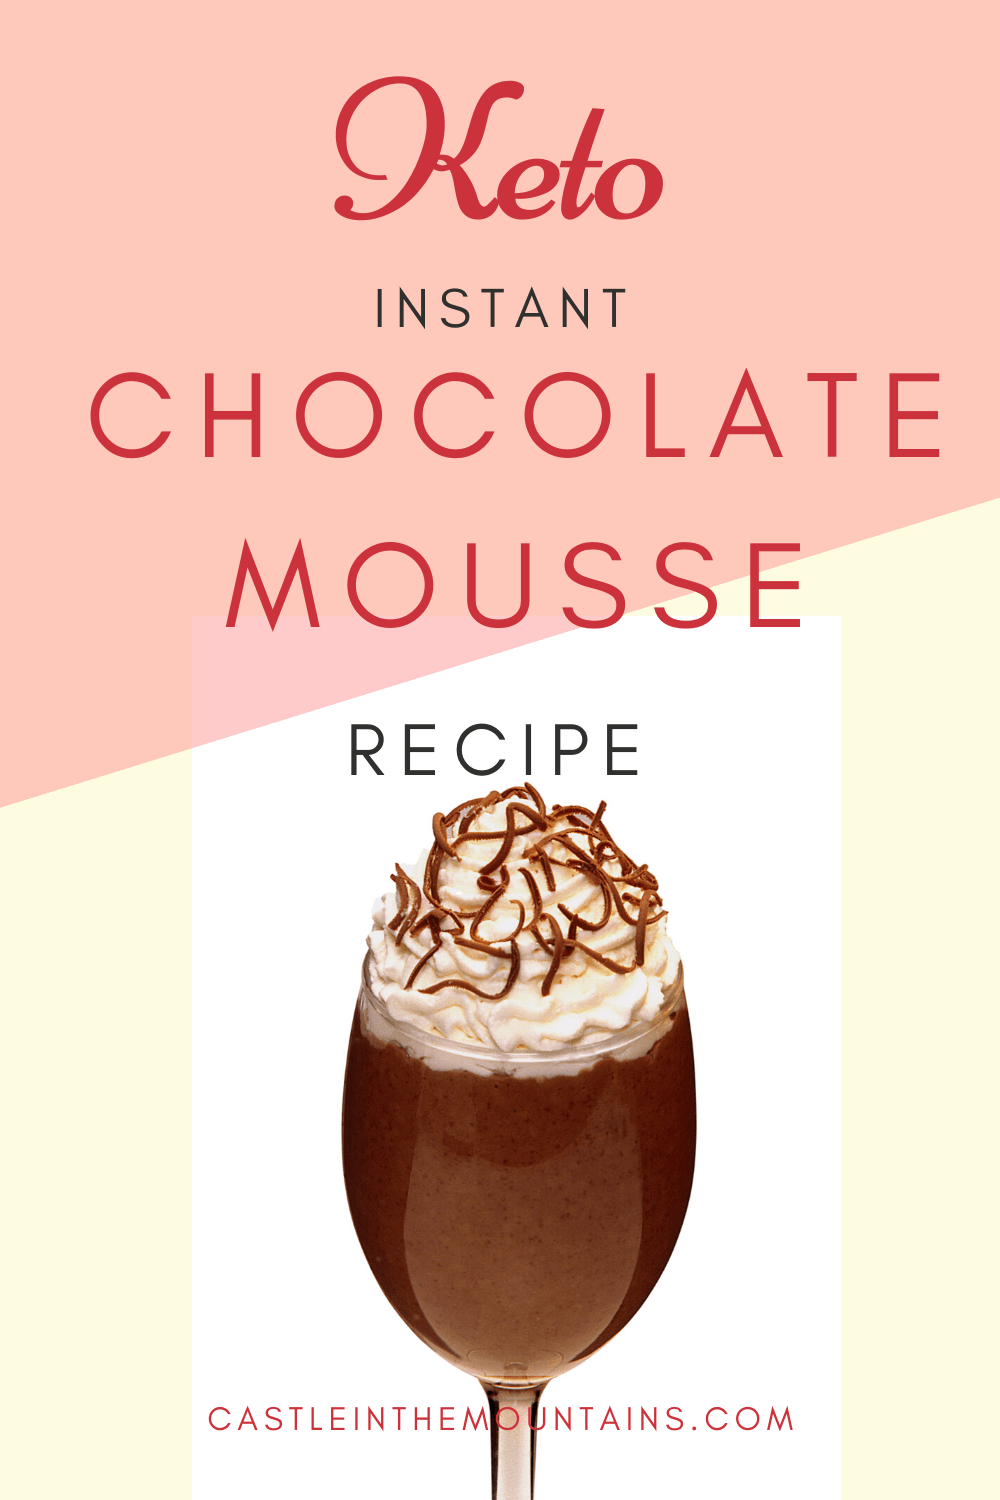 Instant Keto Chocolate Mousse